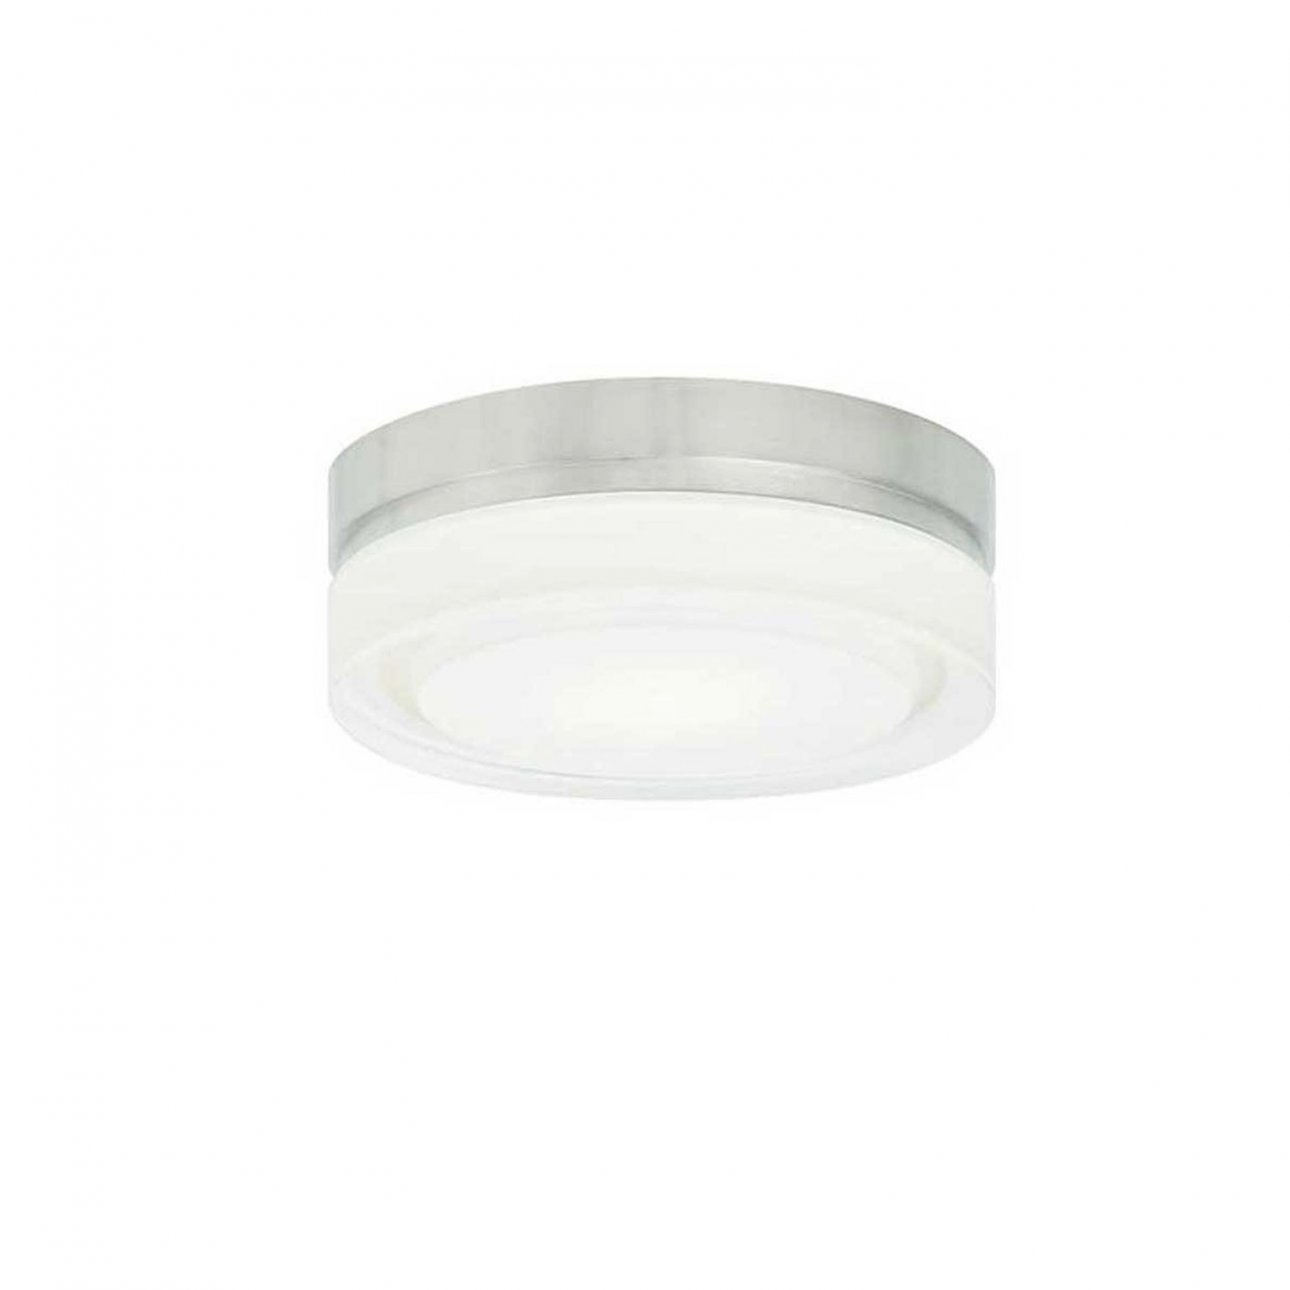 Outdoor Led Ceiling Lights | Agrimarques Pertaining To Outdoor Led Ceiling Lights (View 6 of 15)